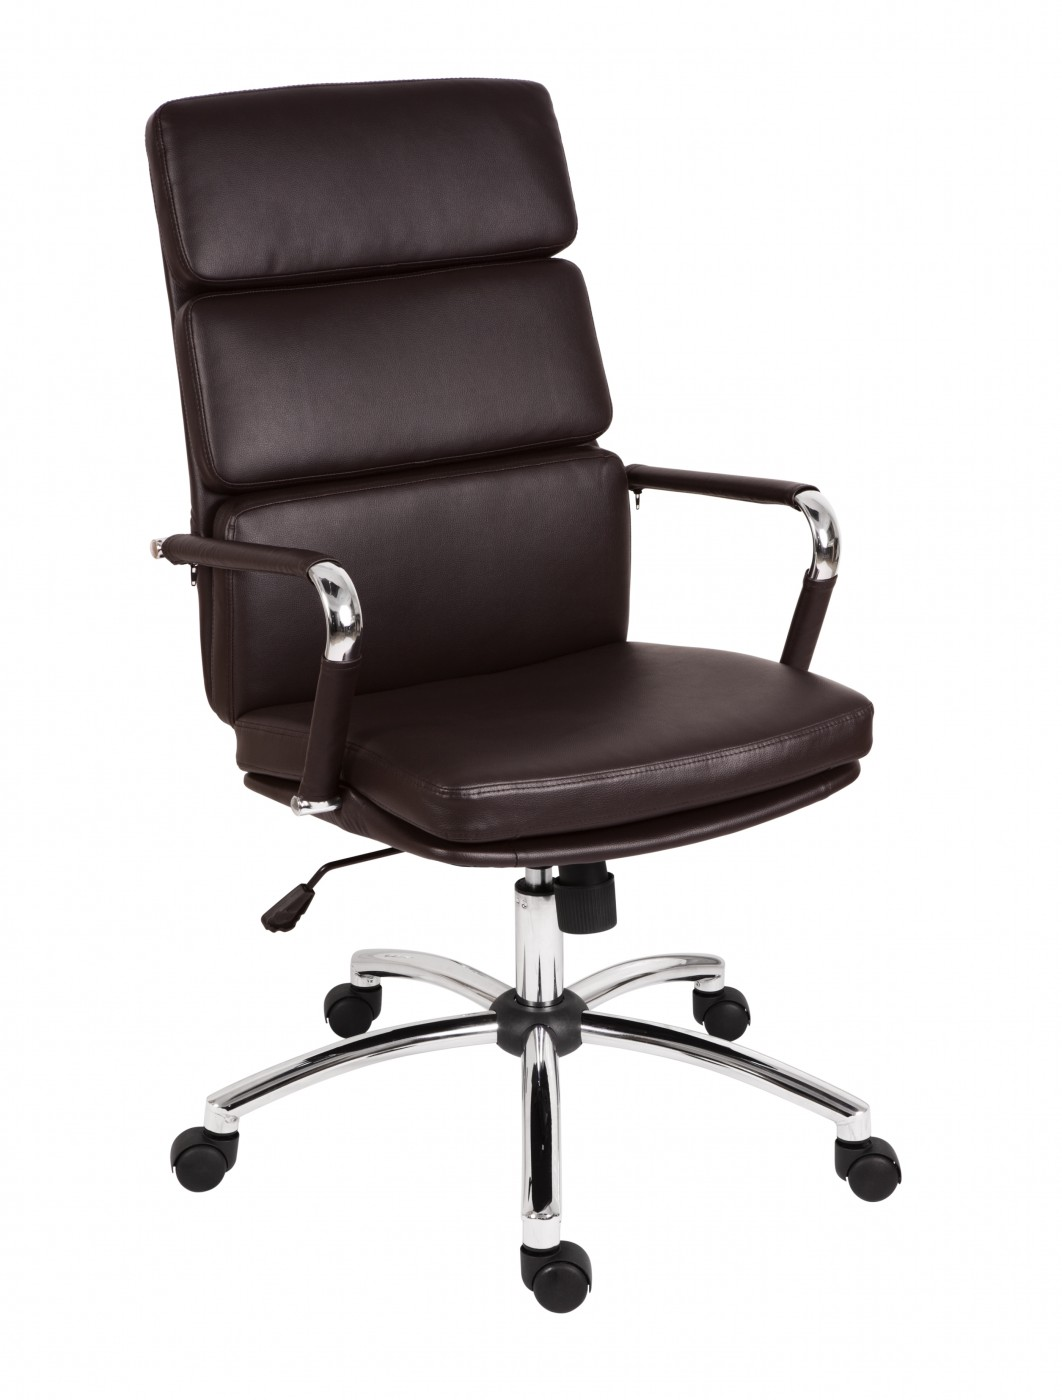 Executive Chair H9610l 121 Office Furniture